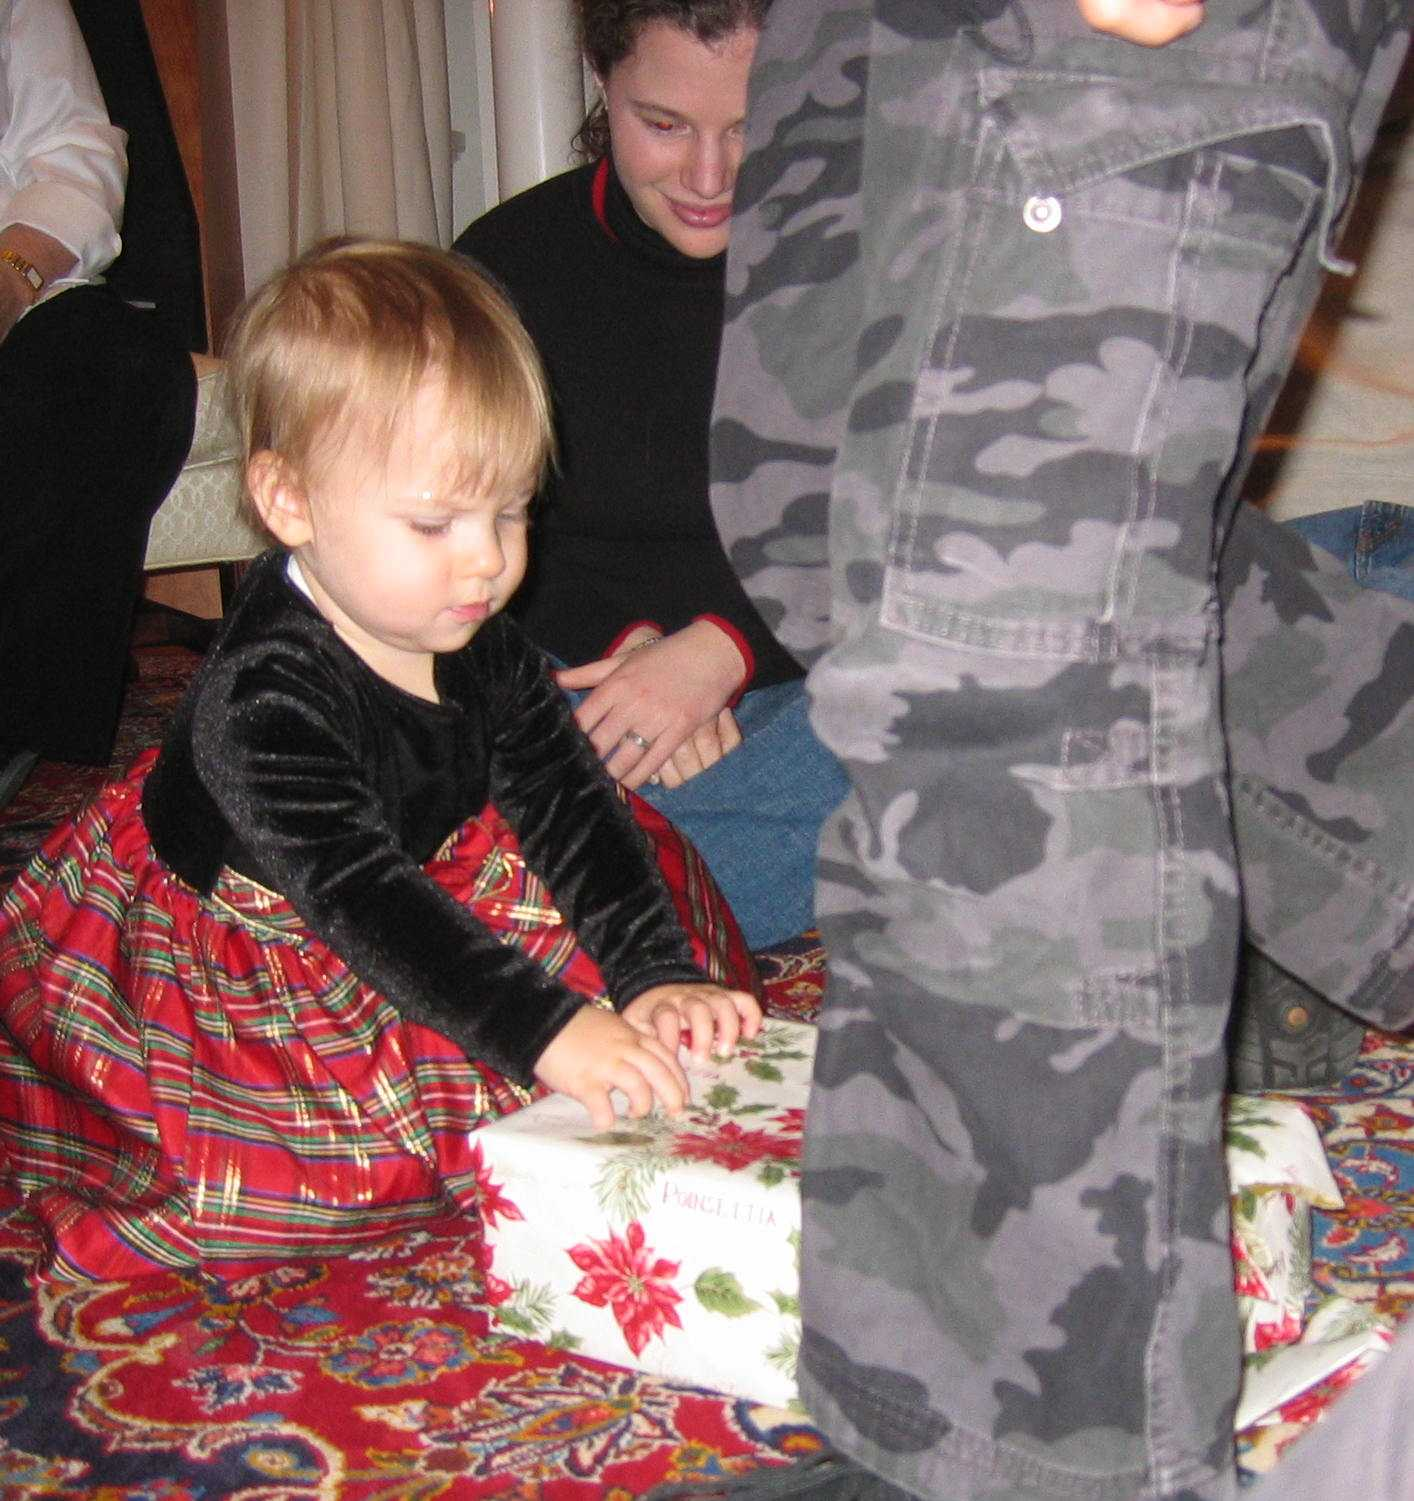 Ripping Open Gifts